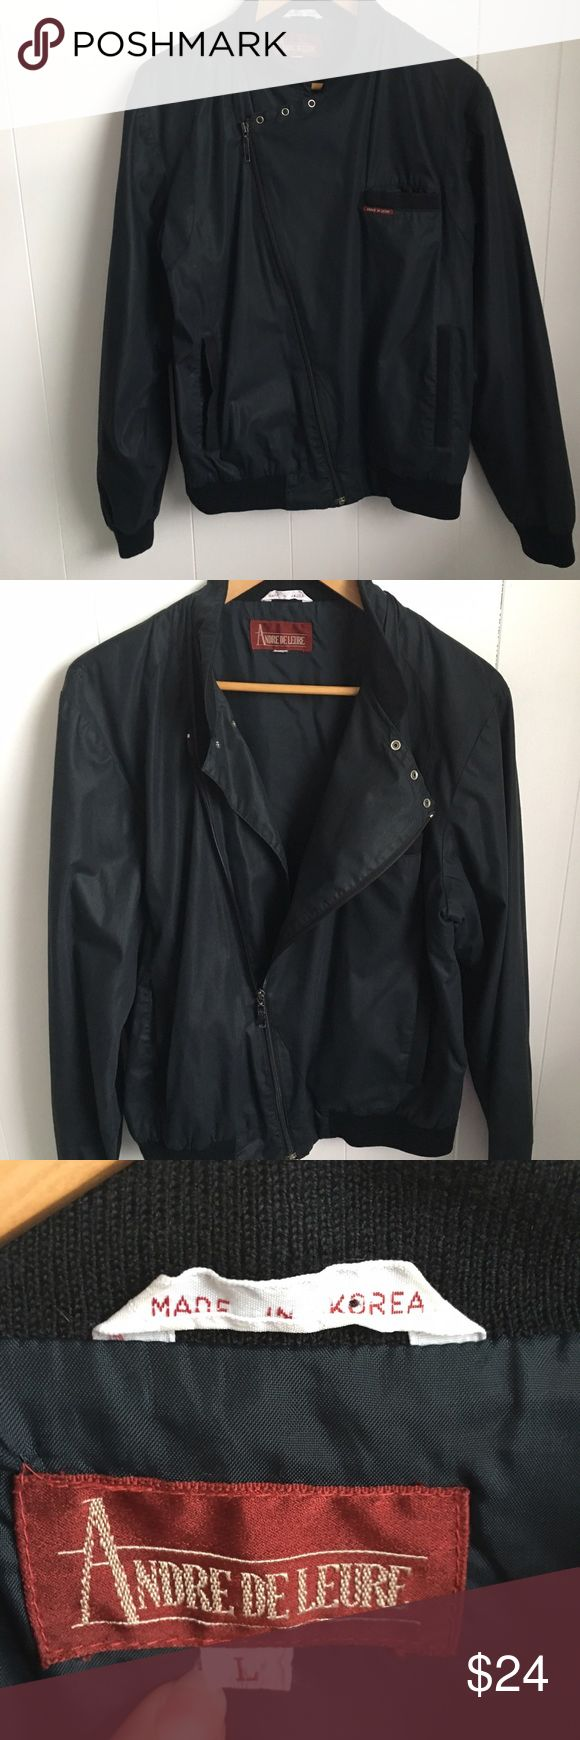 Nike jacket in chinese - Nike Bomber Jacket Chinese Writing Tattoos And Meanings